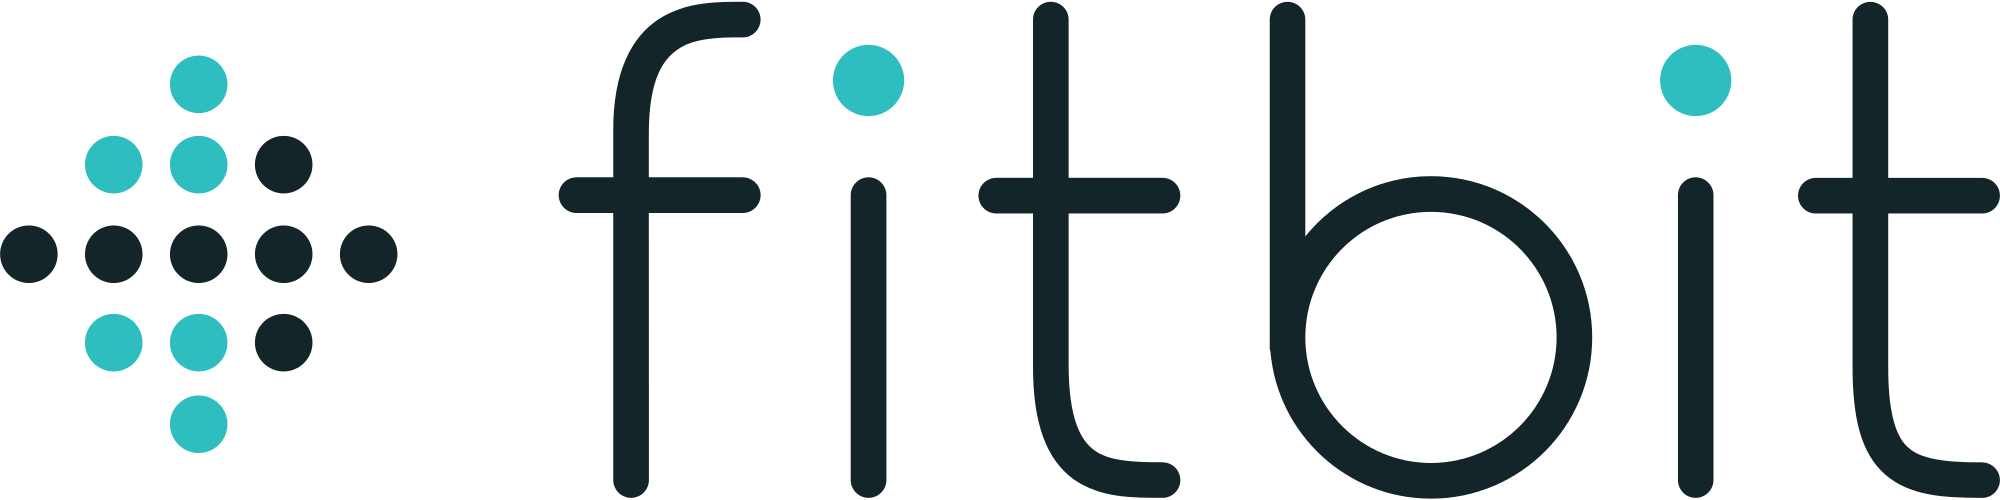 Fitbit Logo - File:Fitbit logo.svg - Wikimedia Commons